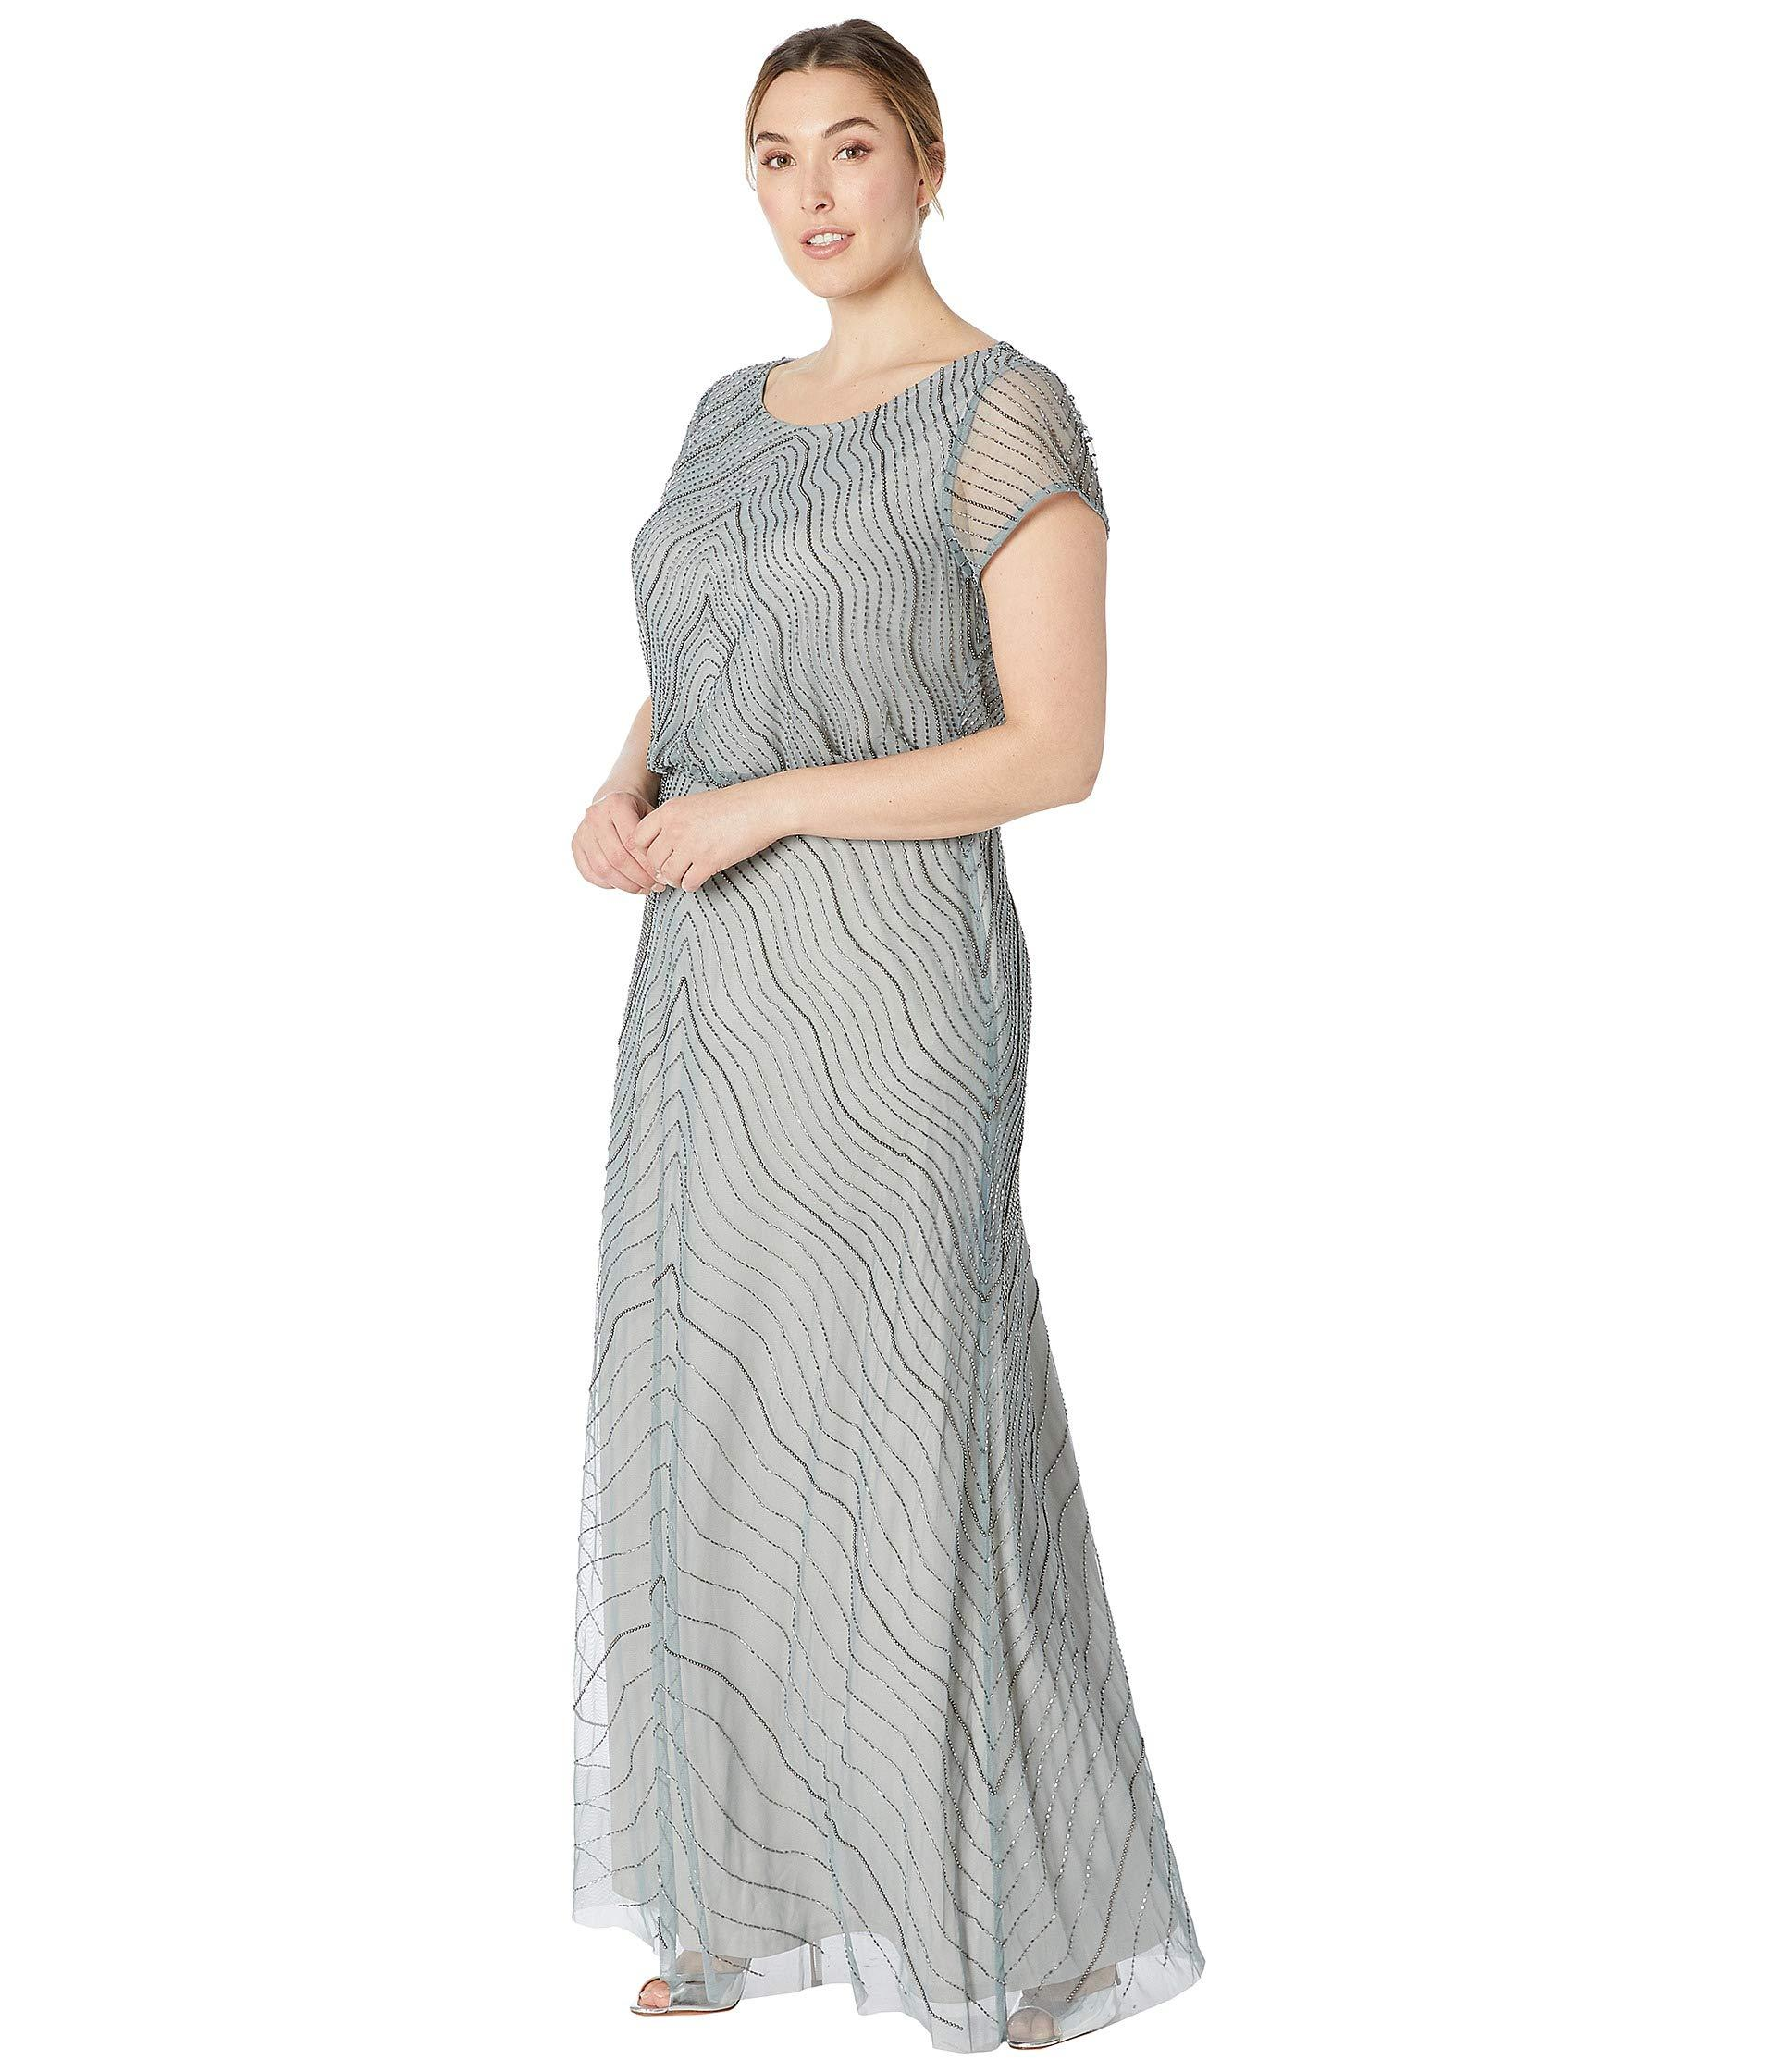 2a5637cd829 Adrianna Papell Plus Size Beaded Blouson Cap Sleeve Evening Gown (slate)  Women s Dress in Gray - Lyst